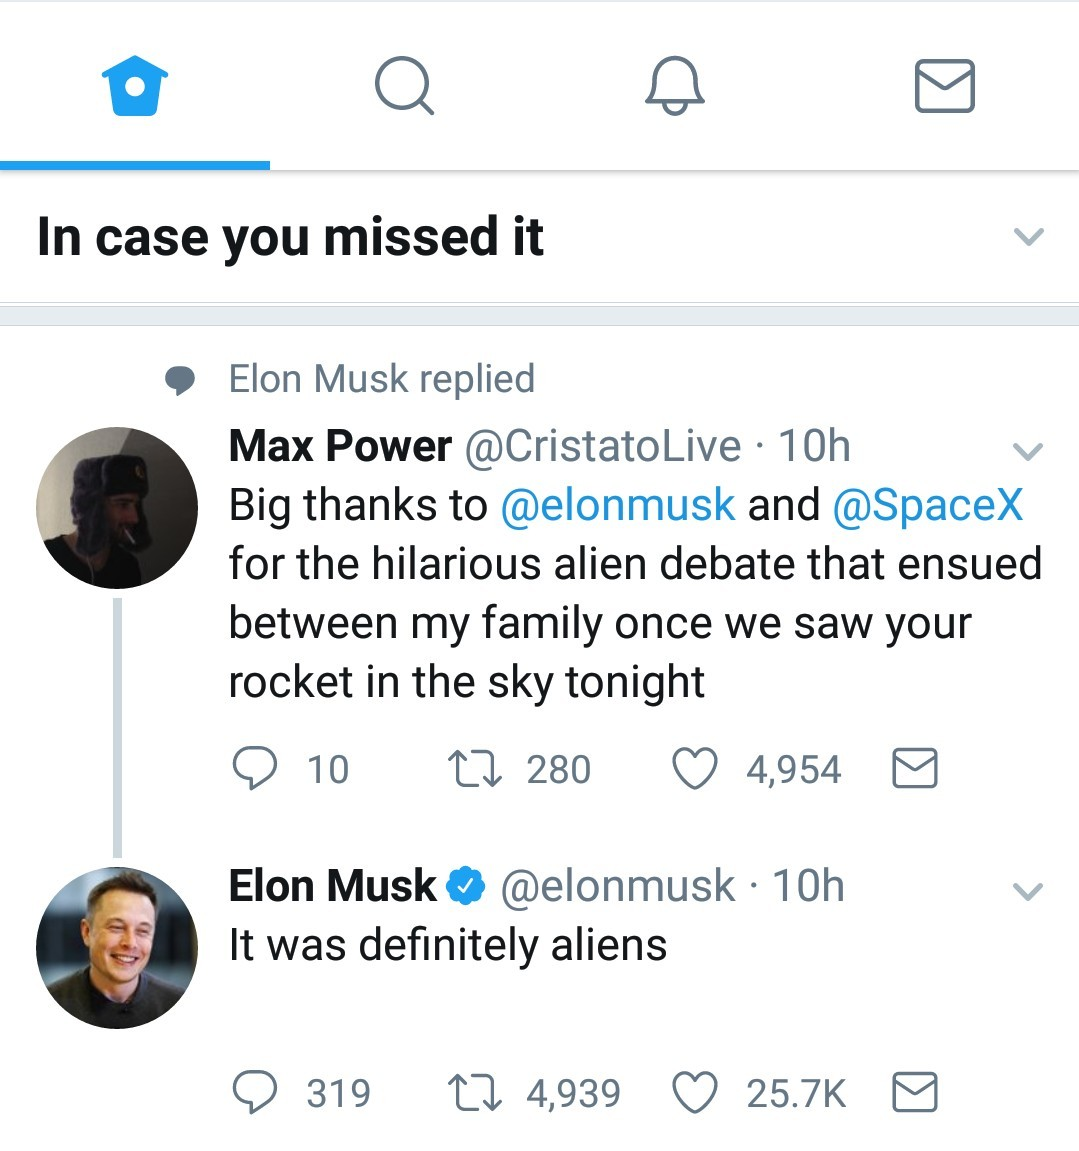 Elon Musk backing up my homie aliens xD - meme